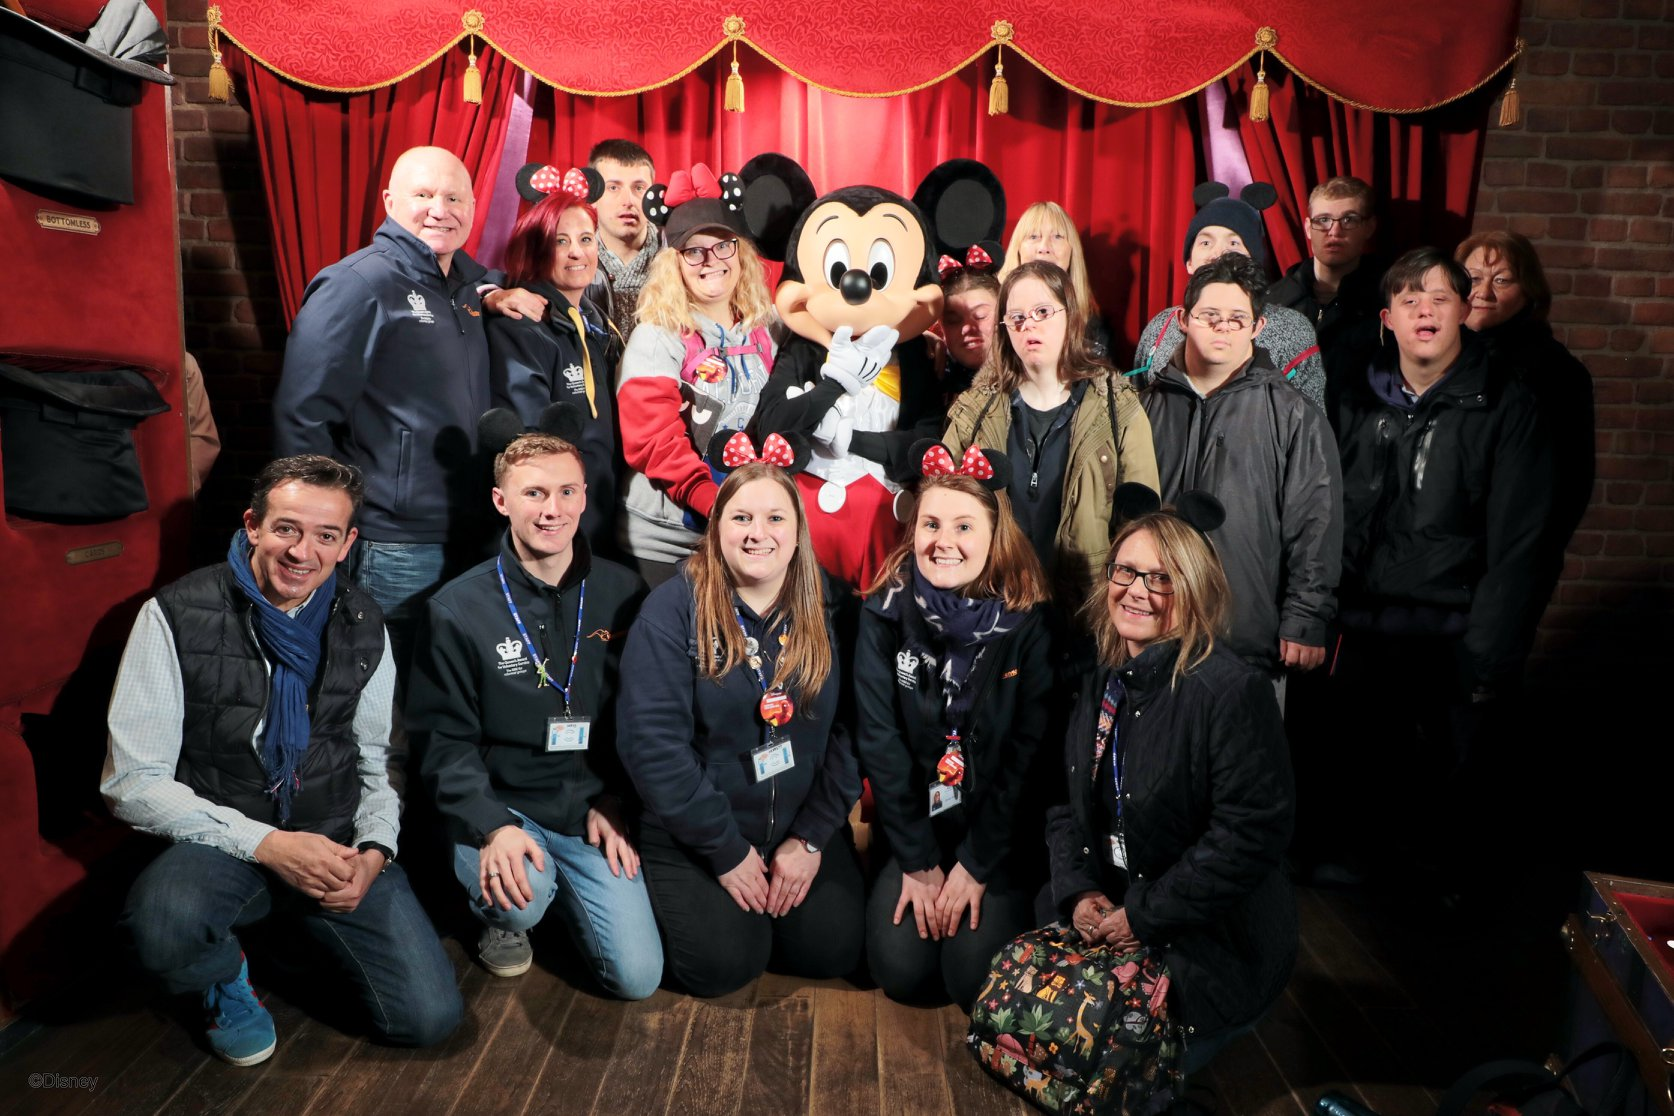 Disneyland Paris 2 night stay – Memory of a Lifetime Trip April 2019